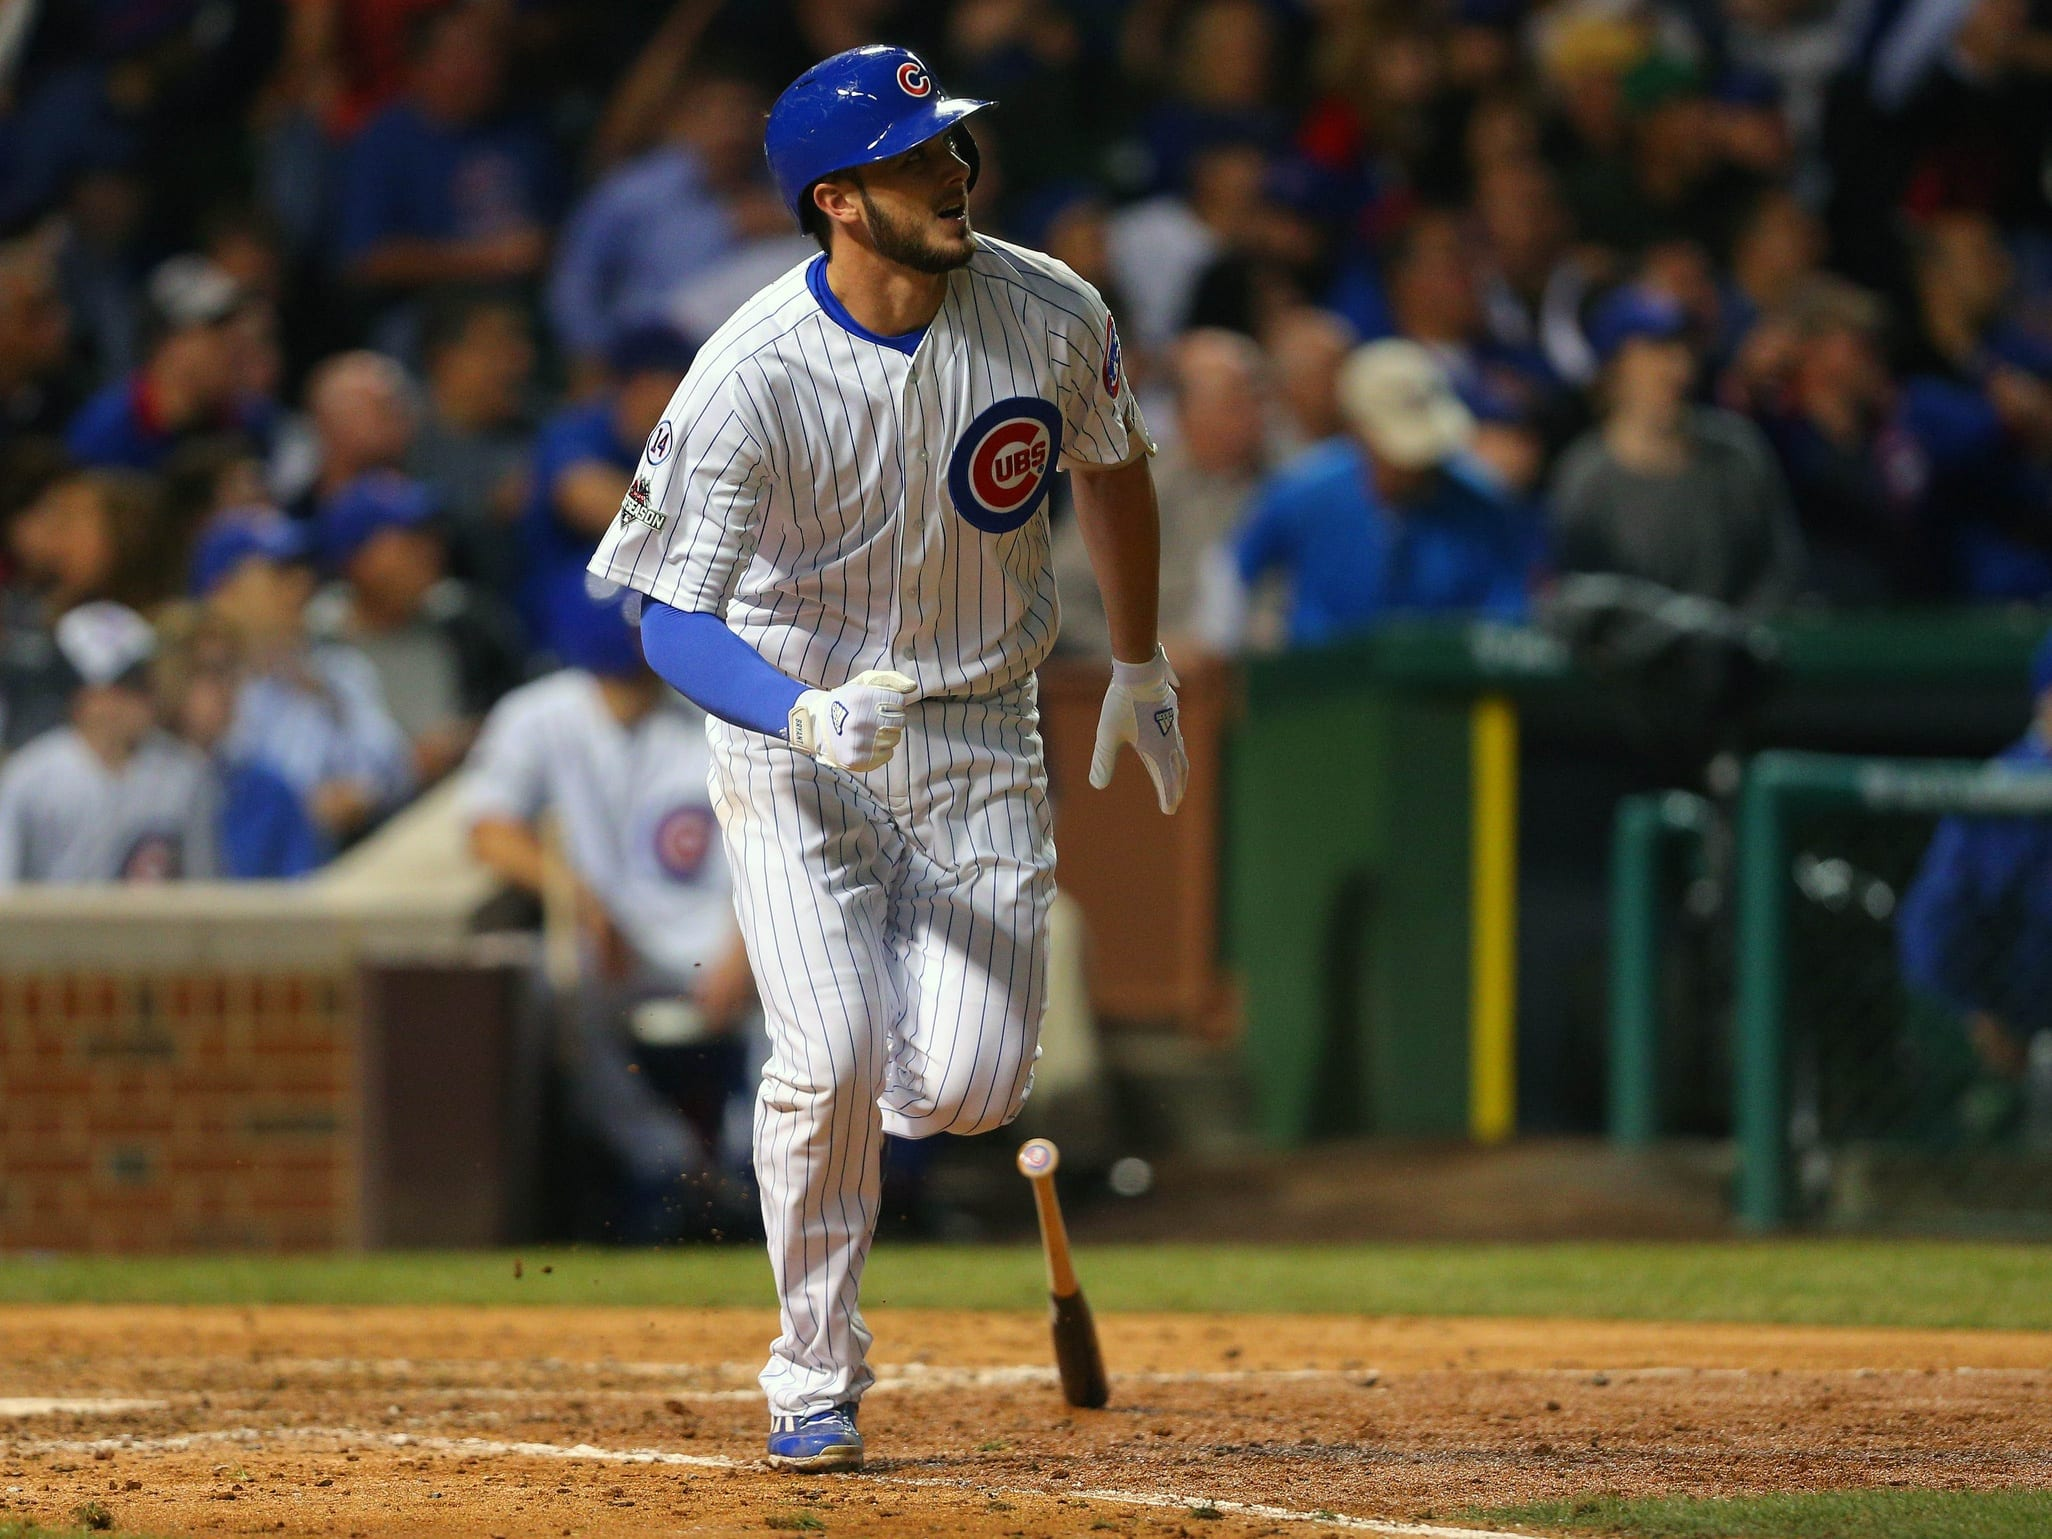 Kris Bryant Unanimous Winner Of Nl Rookie Of The Year; Joc Pederson Receives One Vote